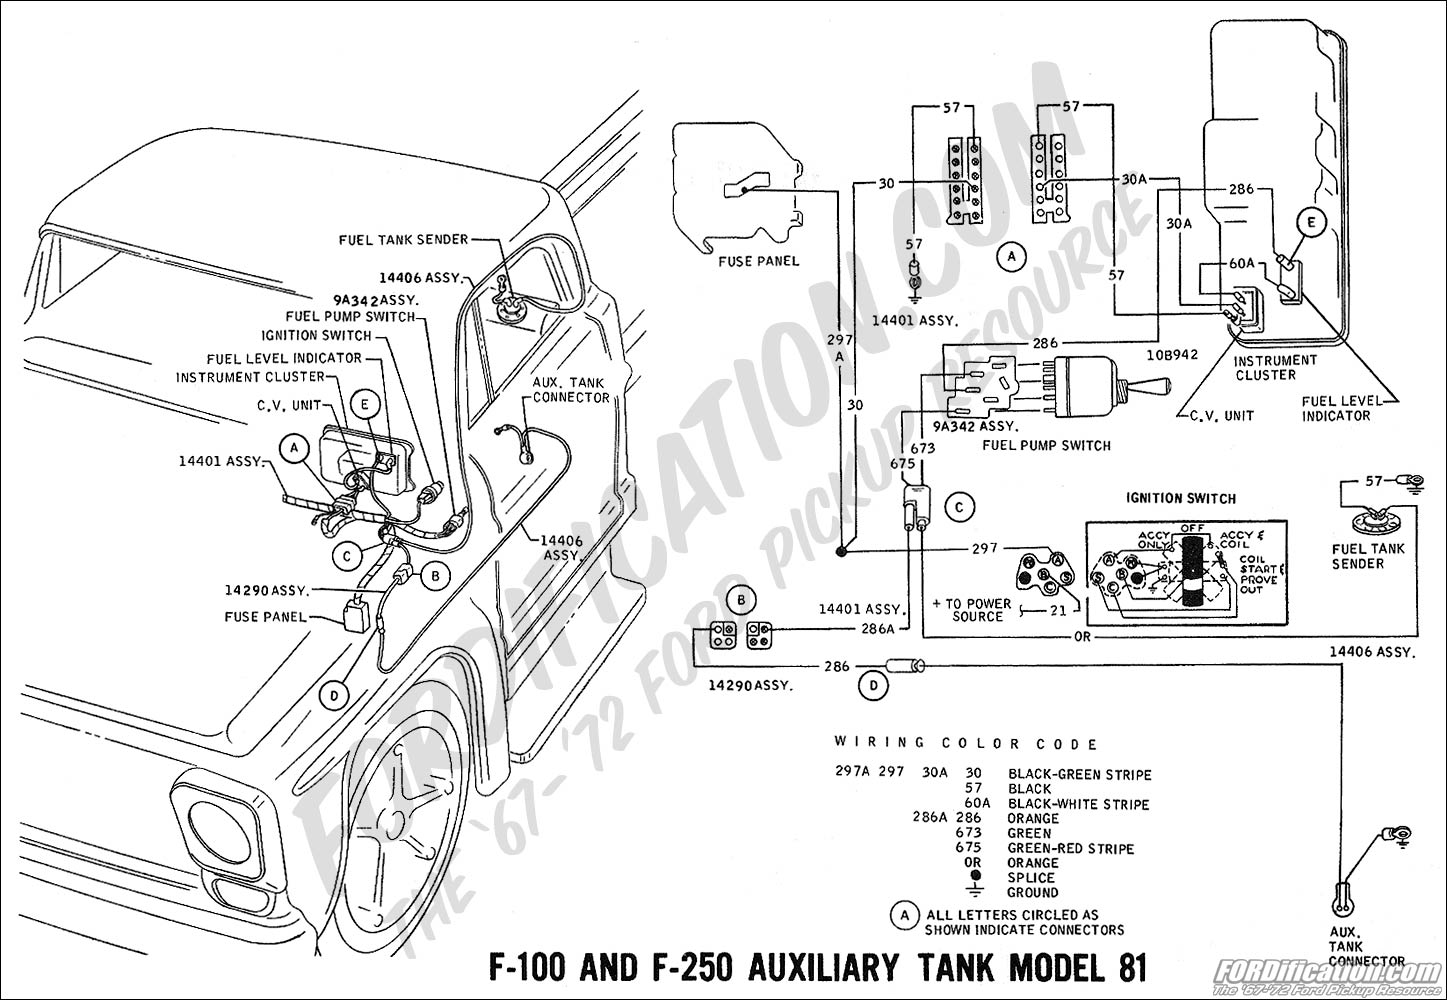 ford truck technical drawings and schematics - section h ... 1993 ford f700 wiring diagram